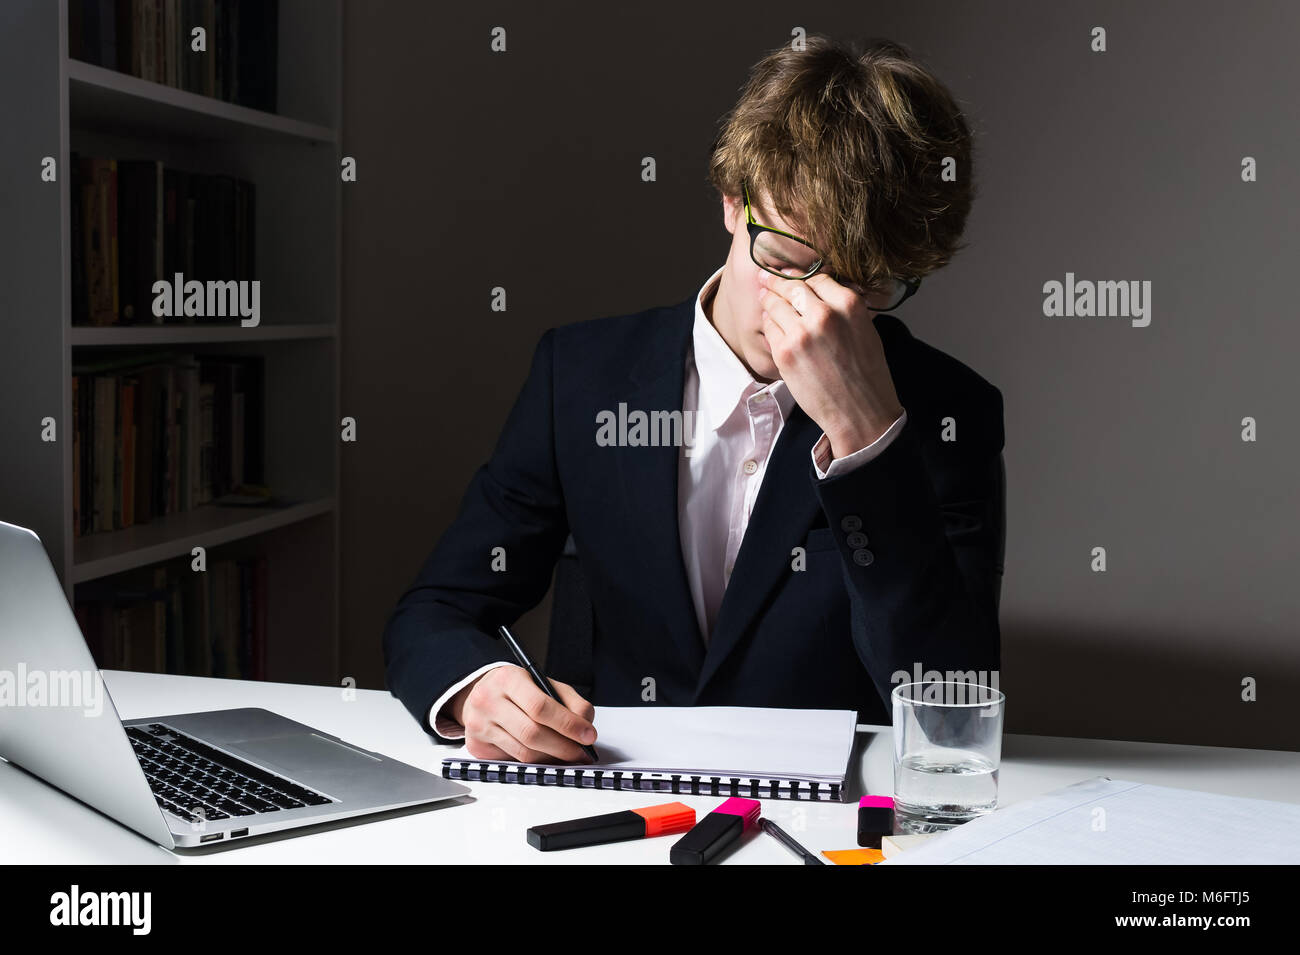 Tired young businessman rubs his eyes at workplace. - Stock Image